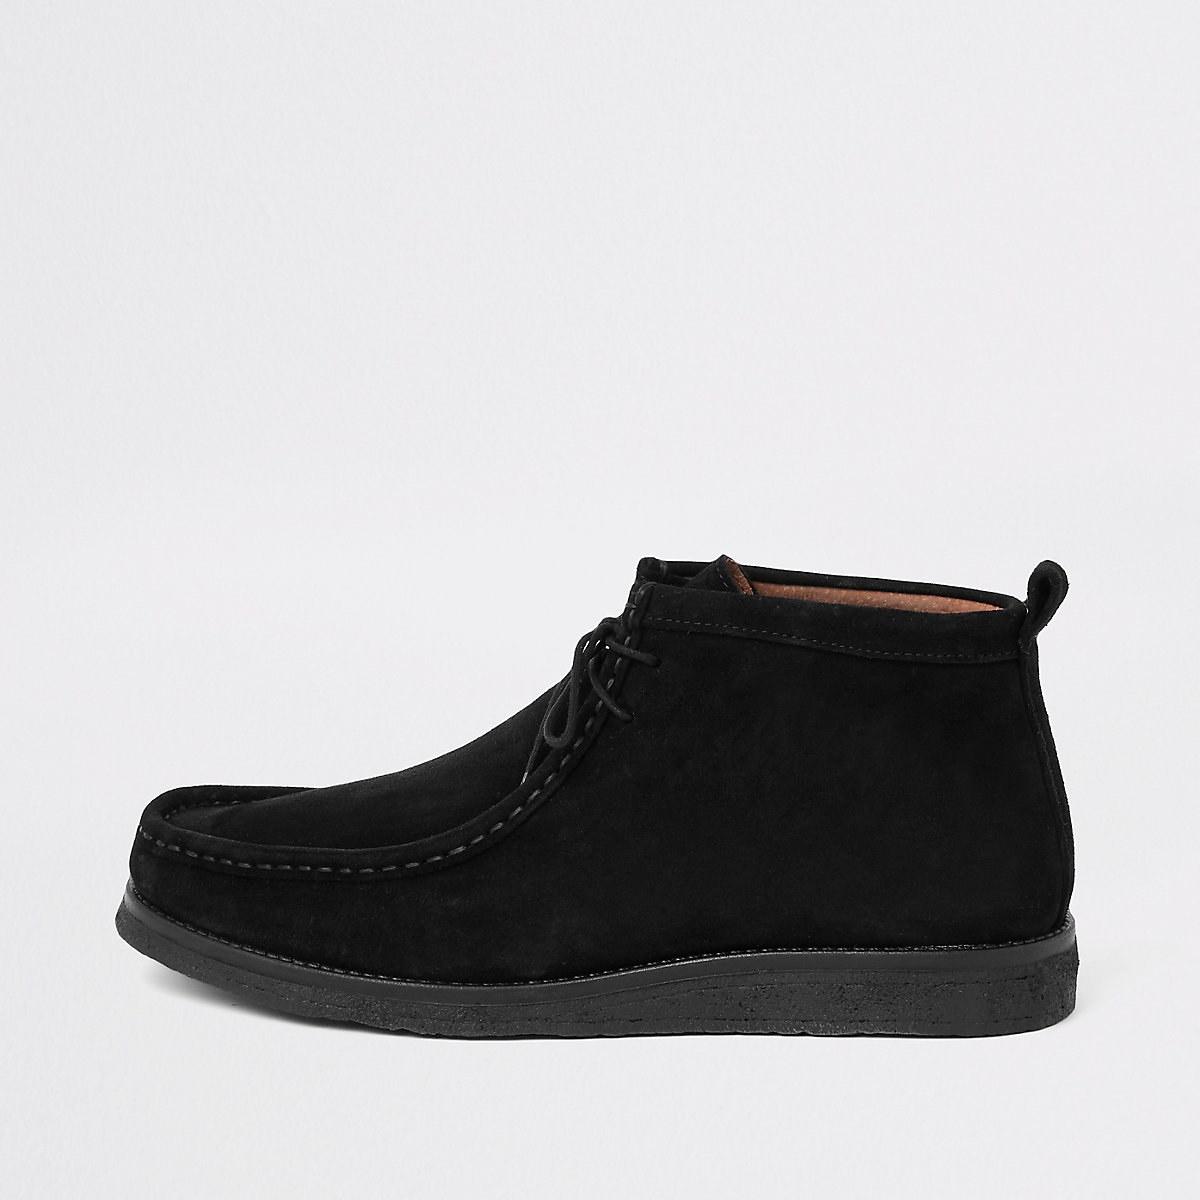 Black suede lace up moccasin boot